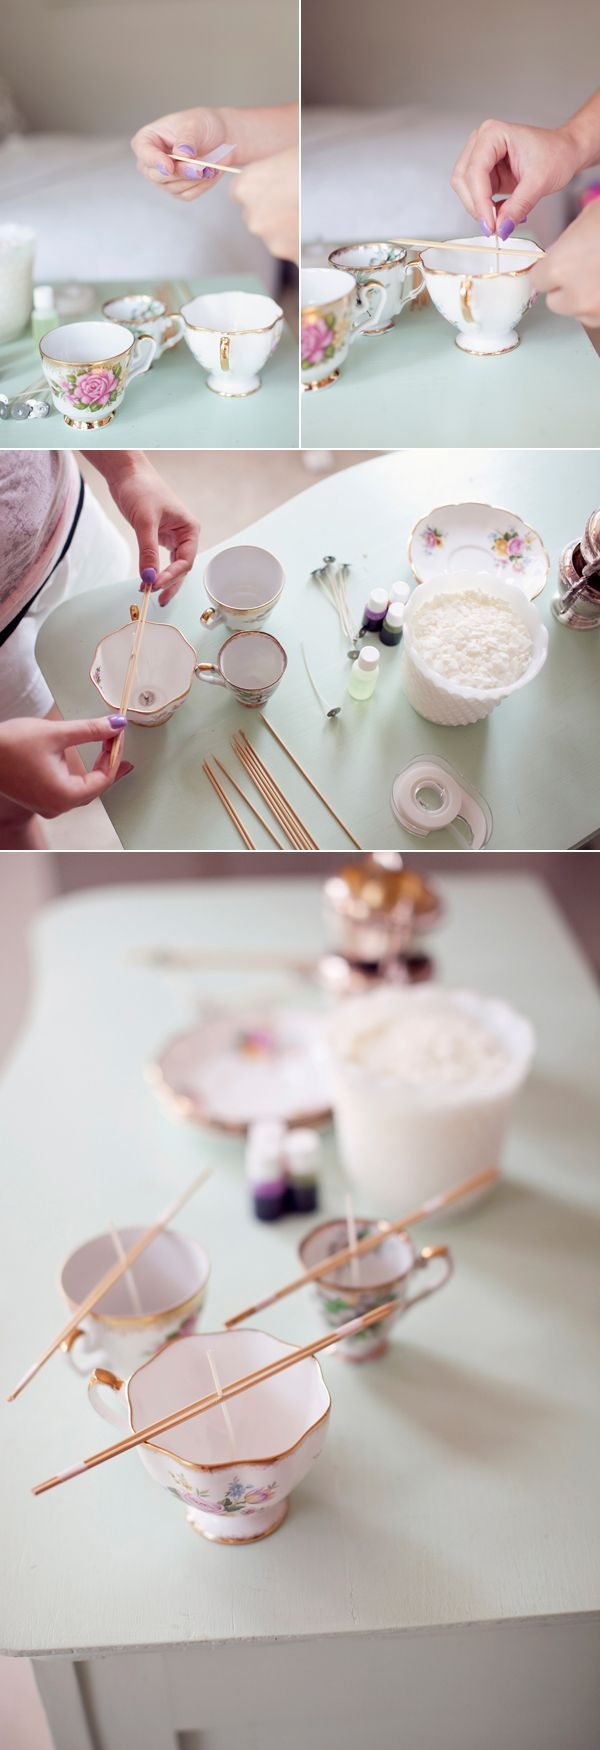 12 Handmade Gift Ideas - make your own candles in vintage antique teacups. LOVE this idea! This would make such a cute gift!